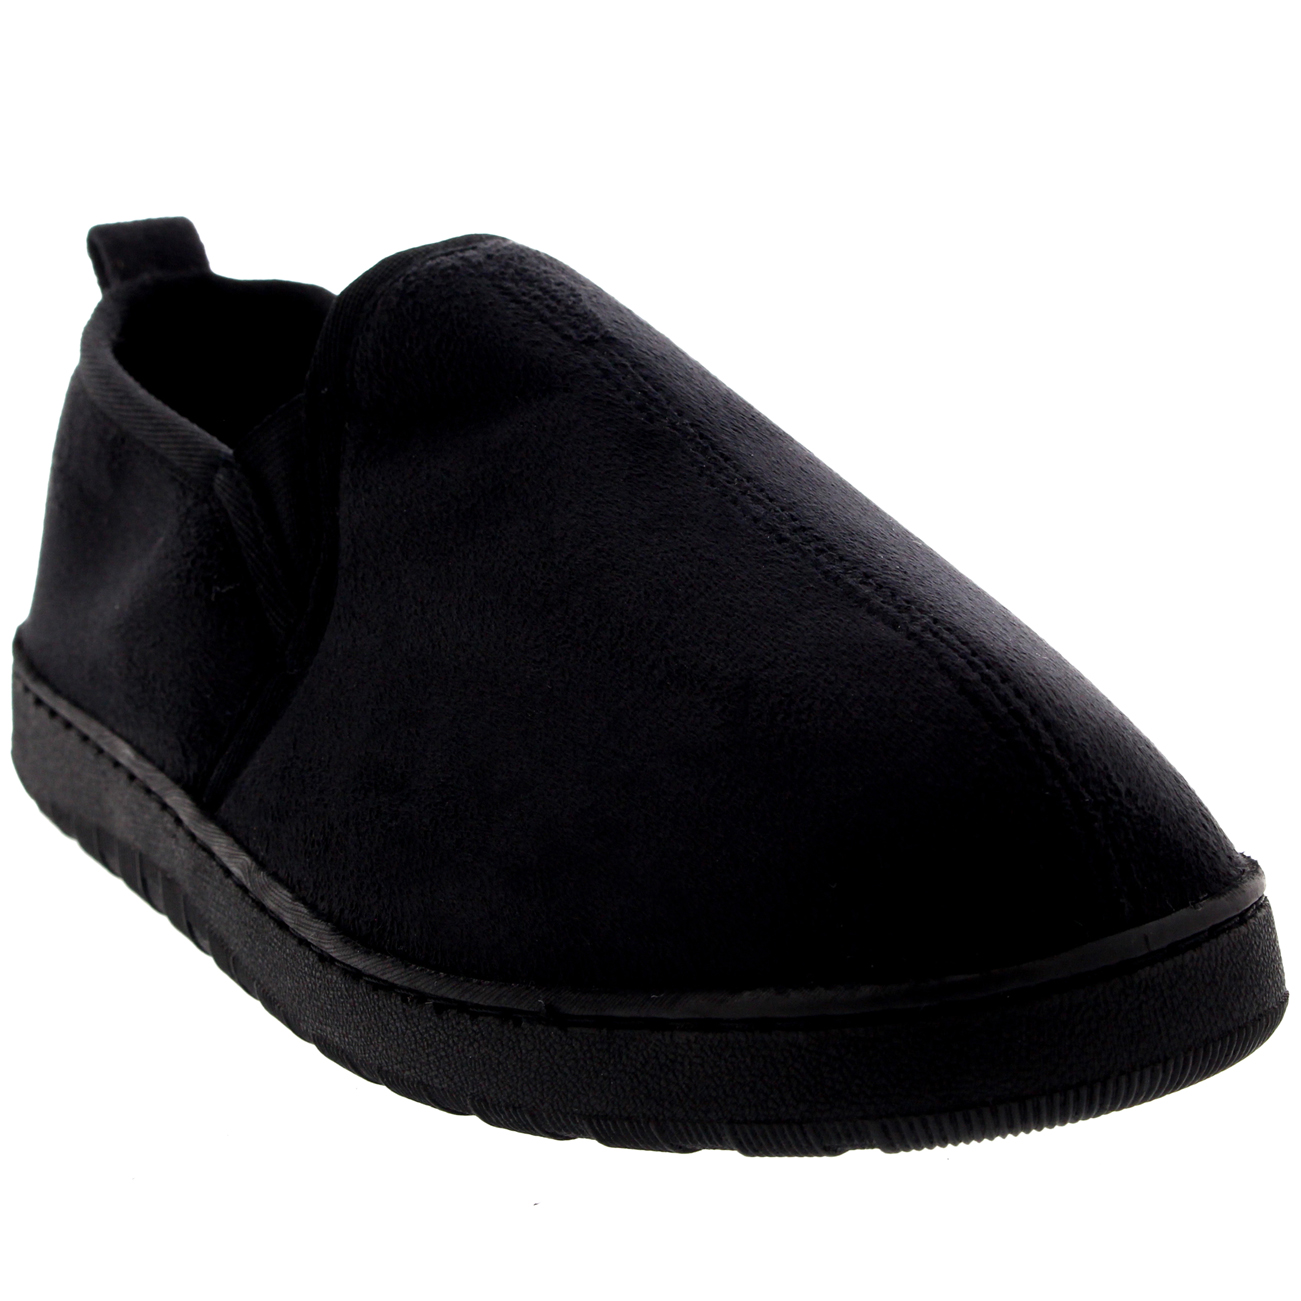 Mens Fur Lined Loafer Slip On Cosy Winter Warm Slipper Shoes Moccasin All Sizes | EBay